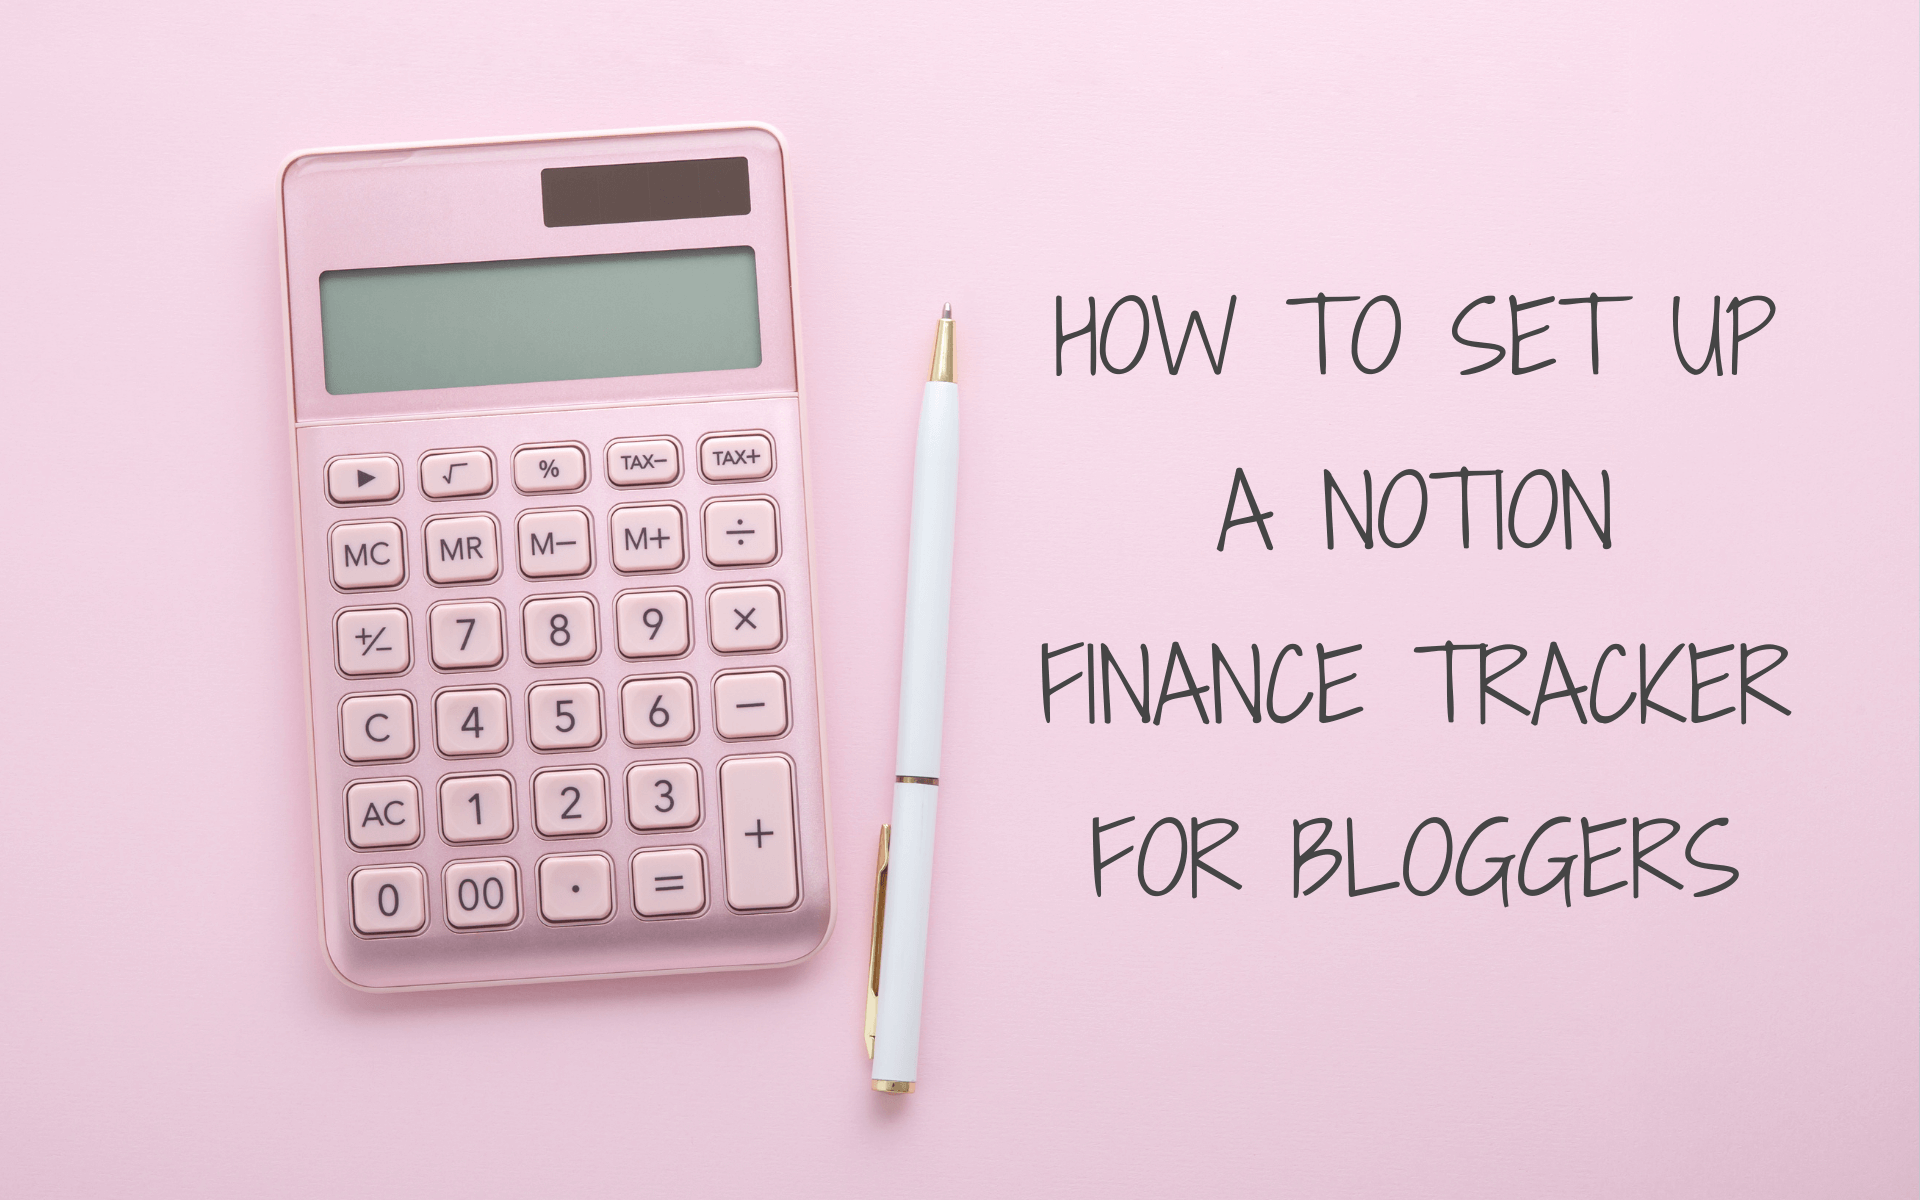 how to set up a notion finance tracker for bloggers featured blog post image